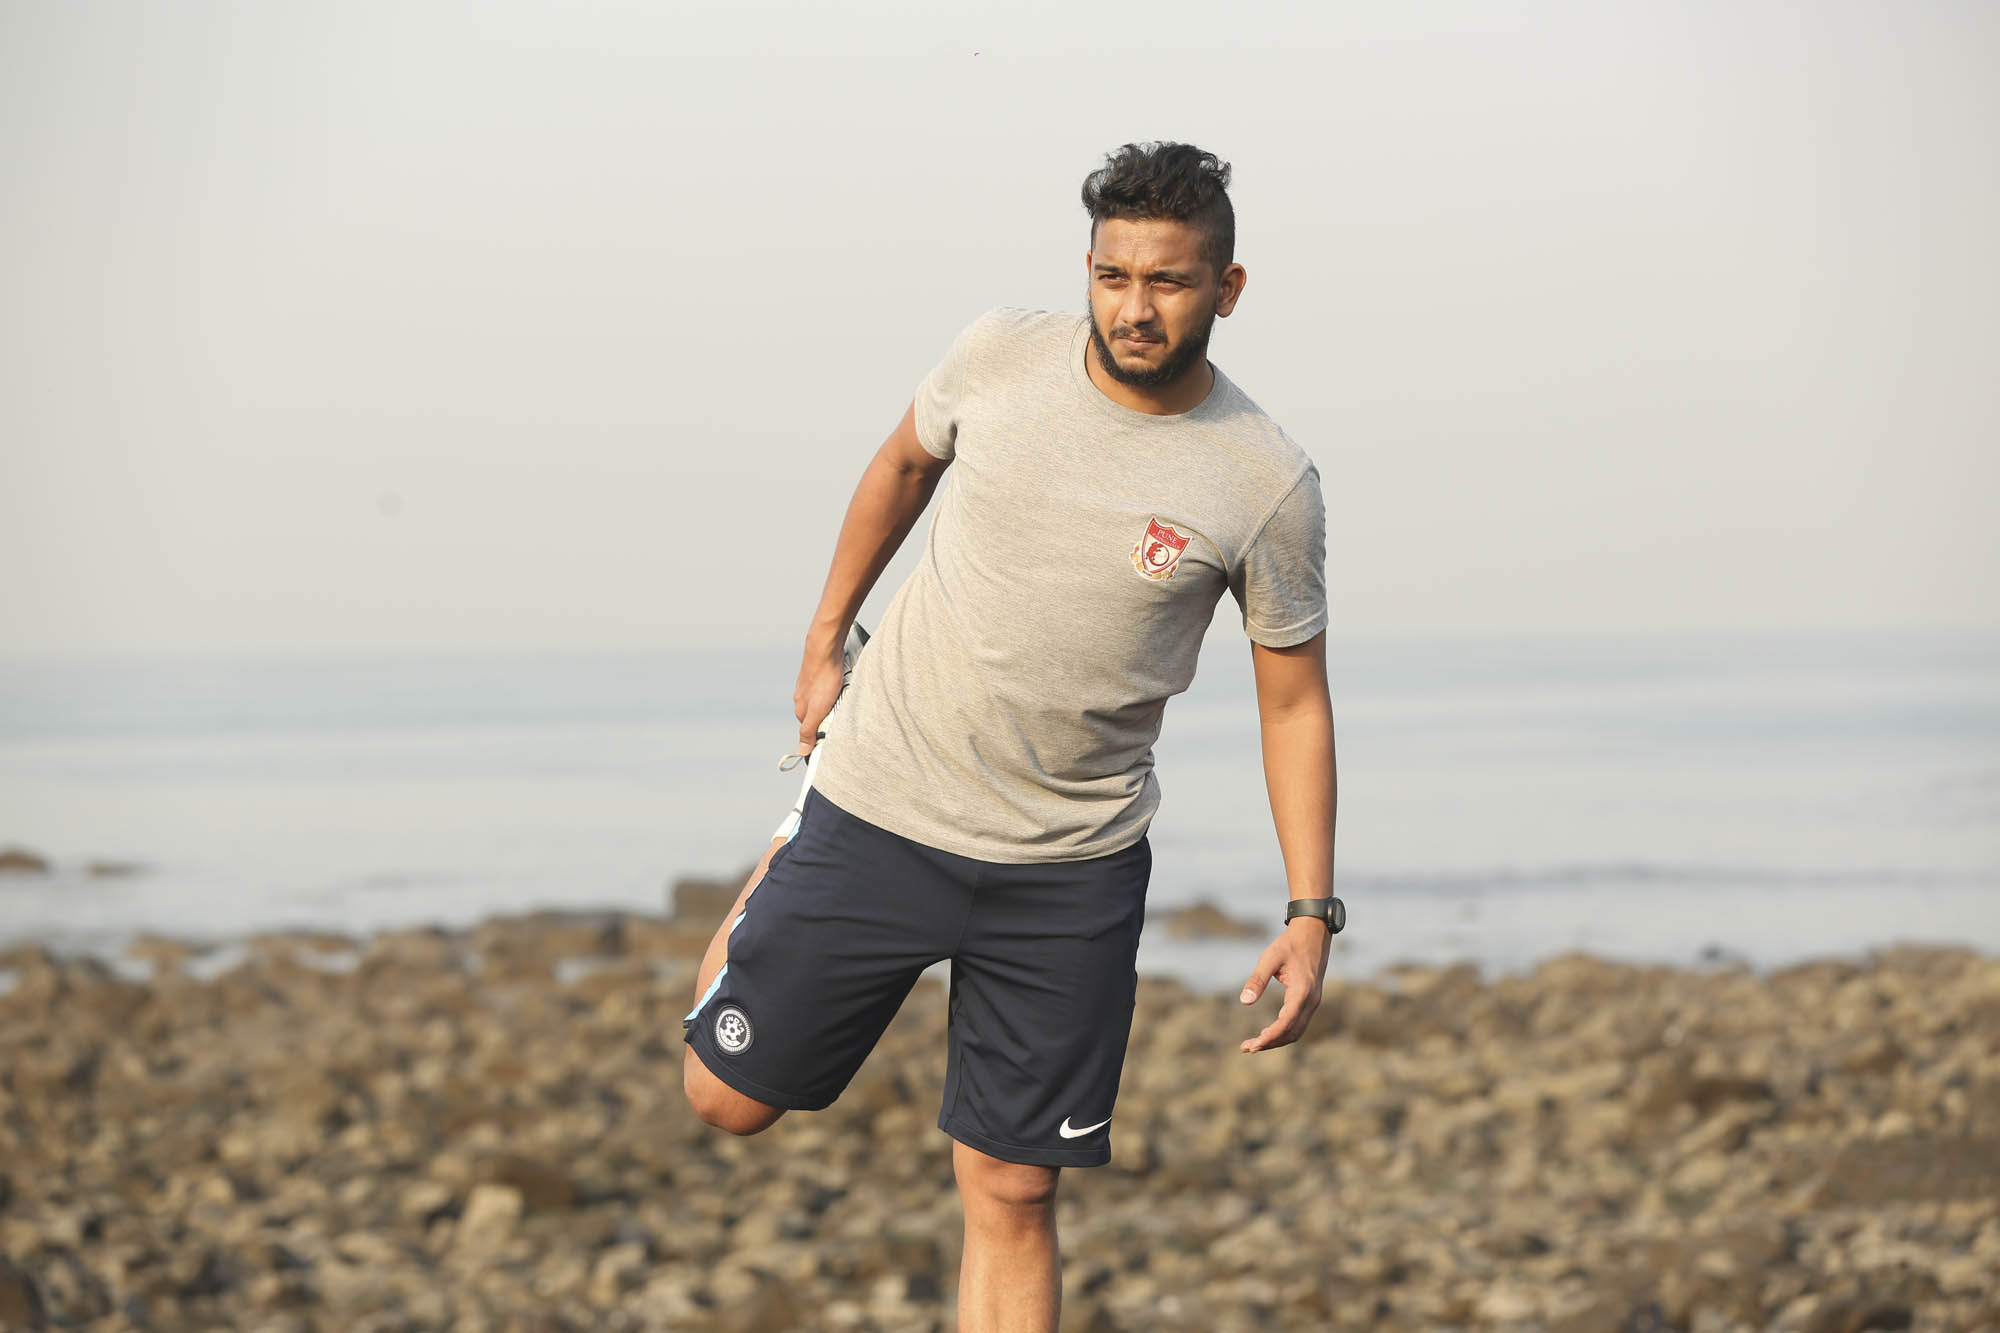 Saurabh Rane, MDR Tb survivor and fitness enthusiast